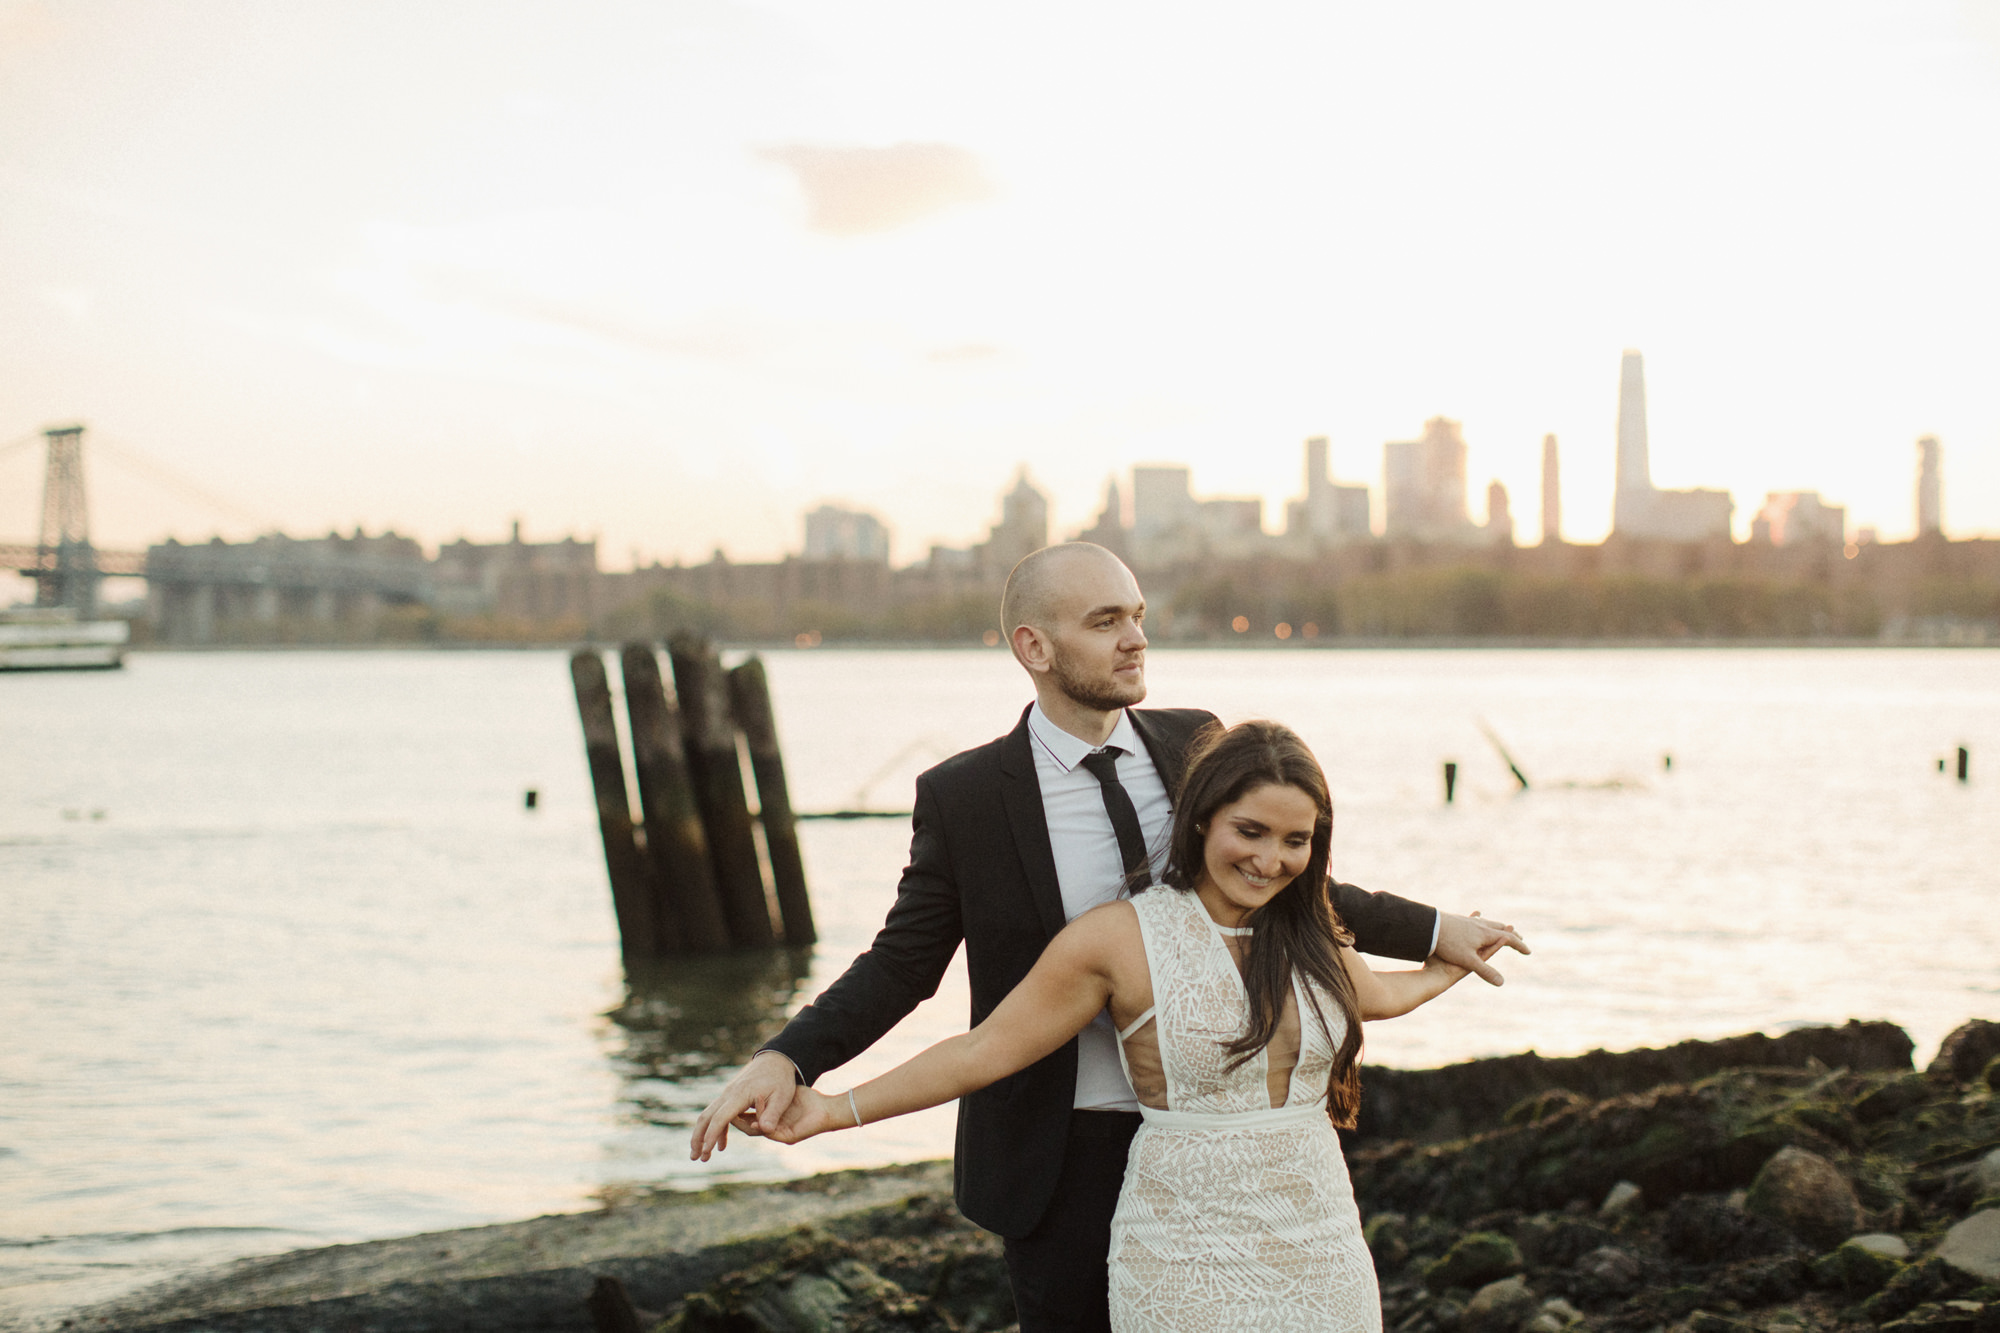 NYC_ELOPEMENT_CITYHALL_BROOKLYN_SAMMBLAKE_0050.jpg